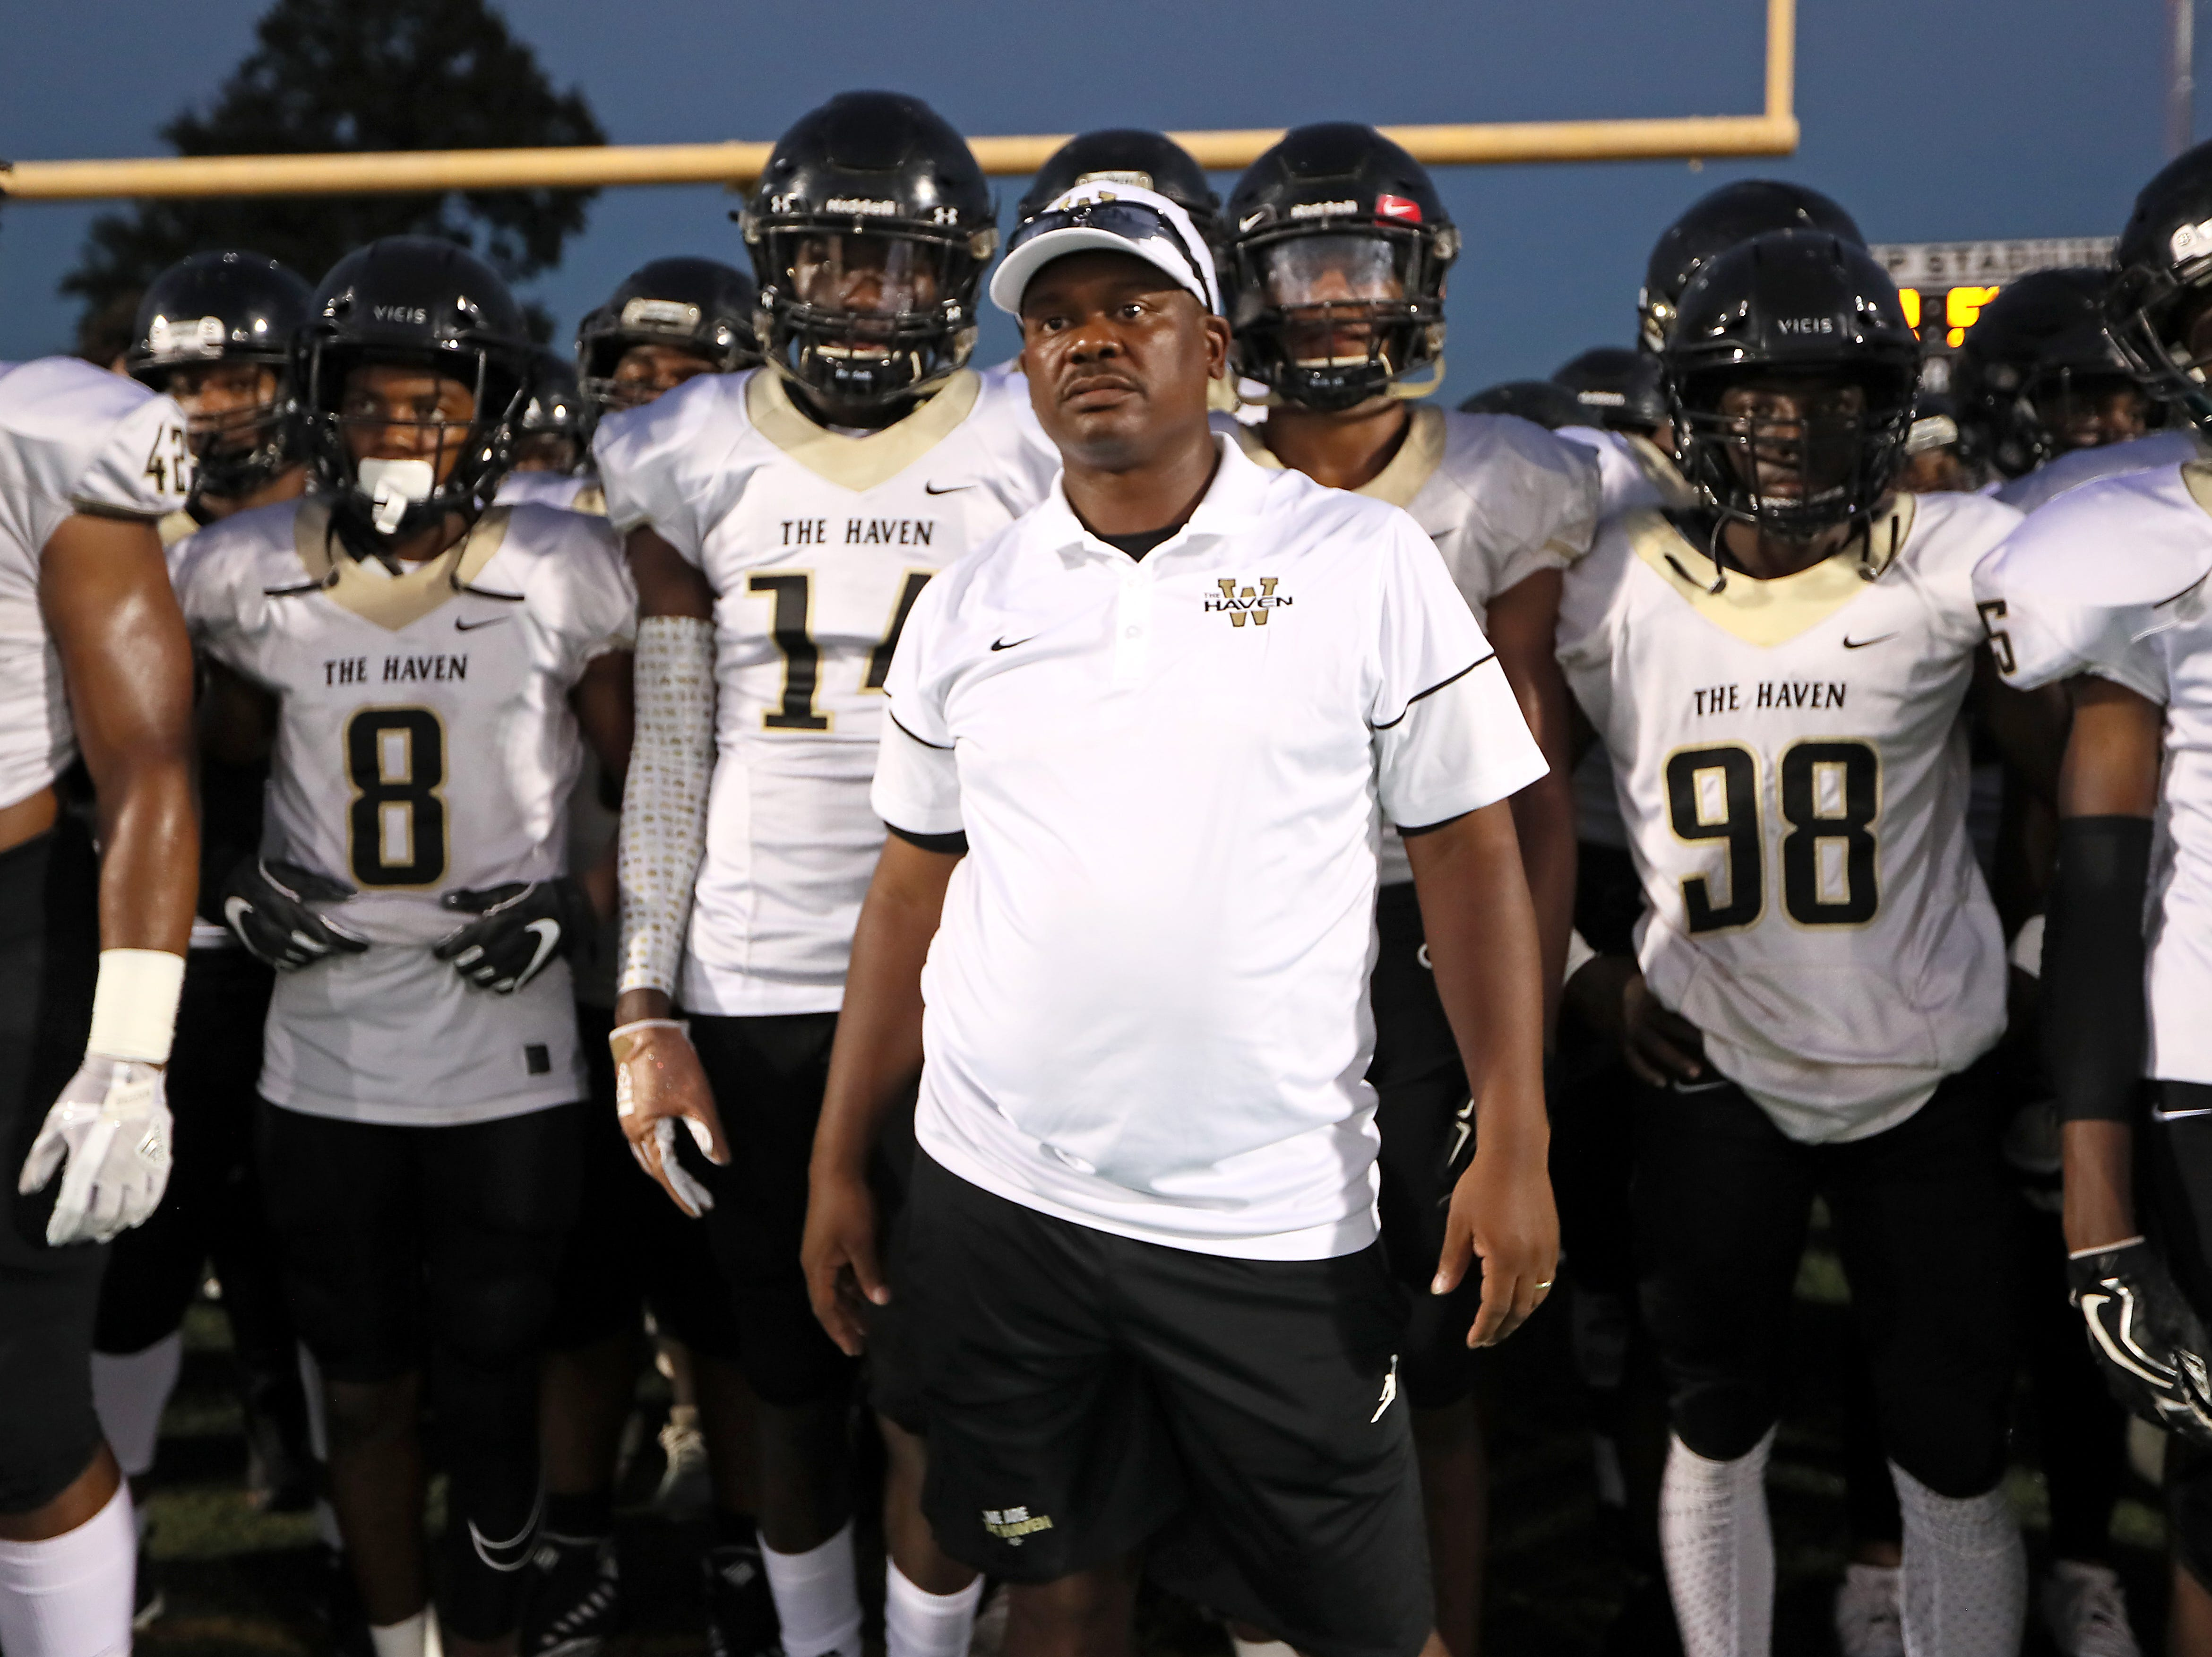 Whitehaven Head Coach Rodney Saulsberry prepares to lead his team out on to the field for their game at Memphis Central High School on Friday, Oct. 5, 2018.